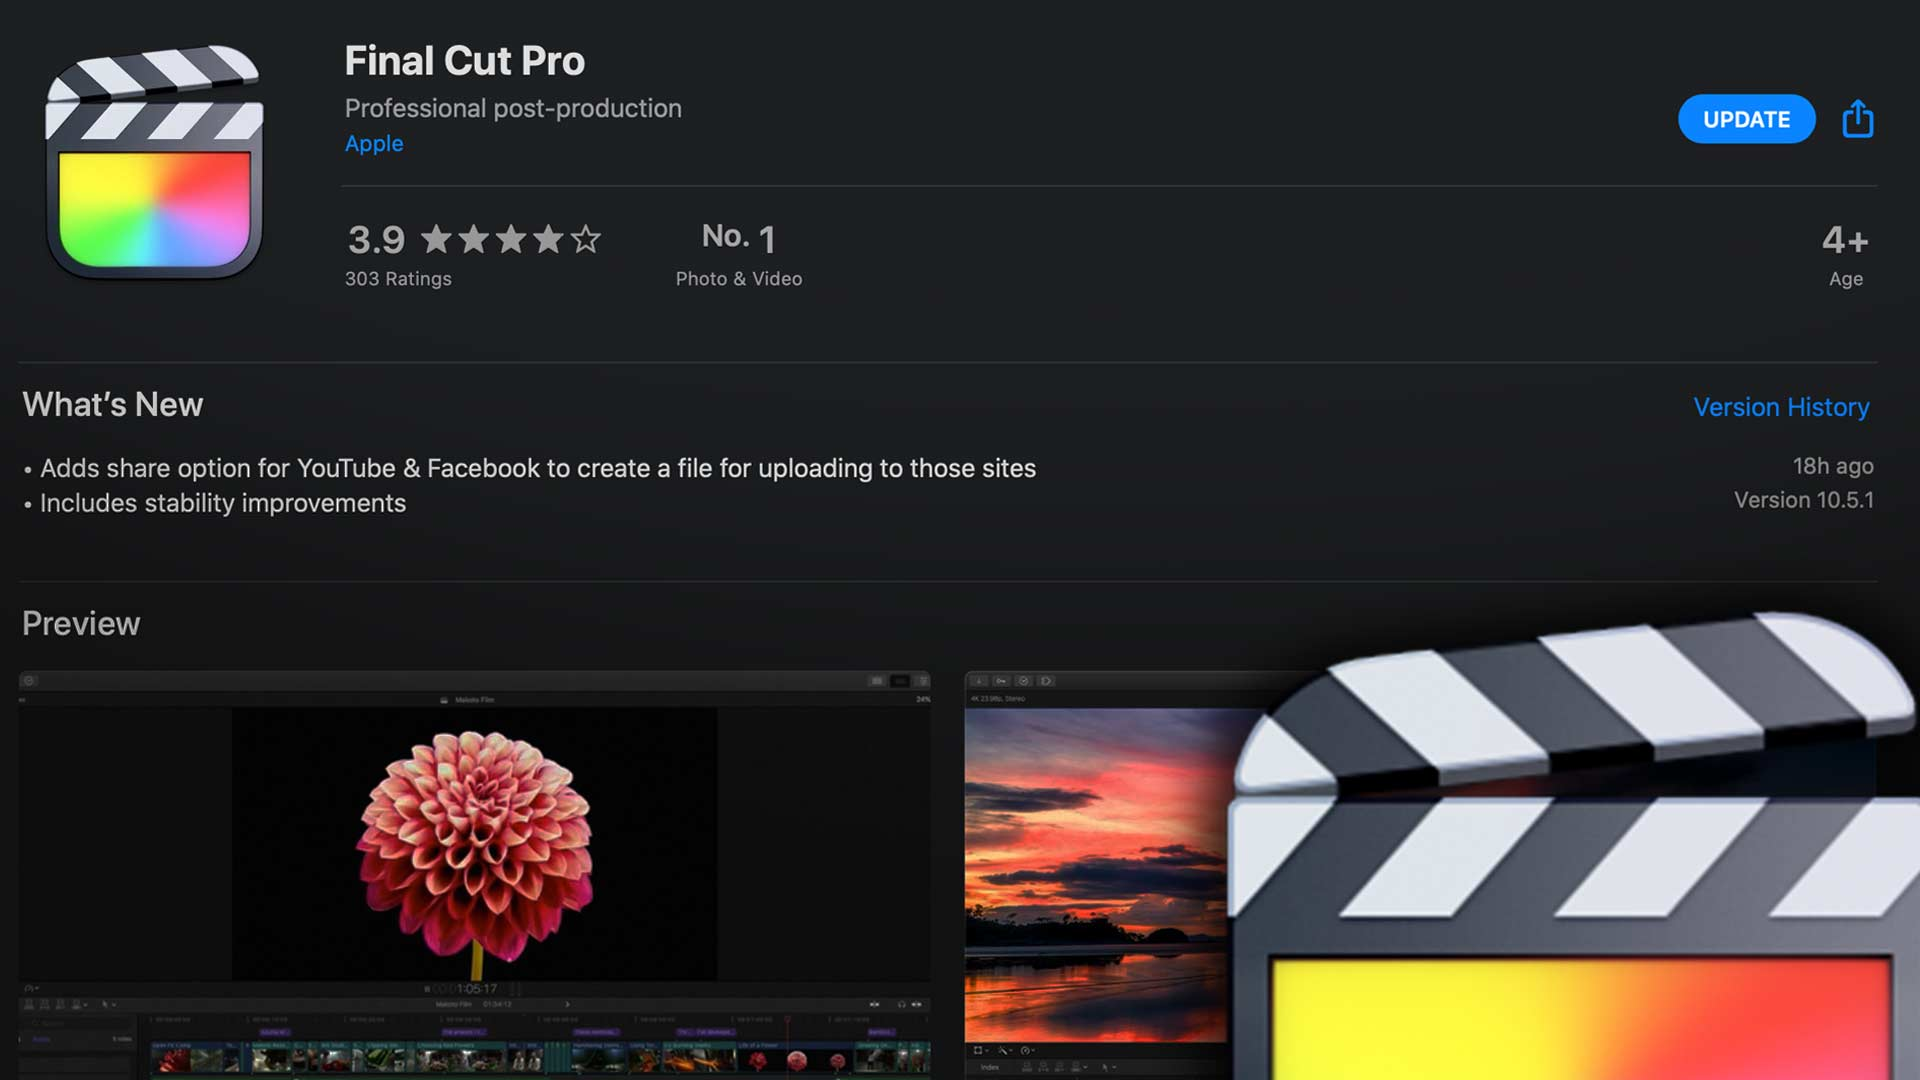 Apple Updates Final Cut Pro to 10.5.1 and Compressor to 4.5.1